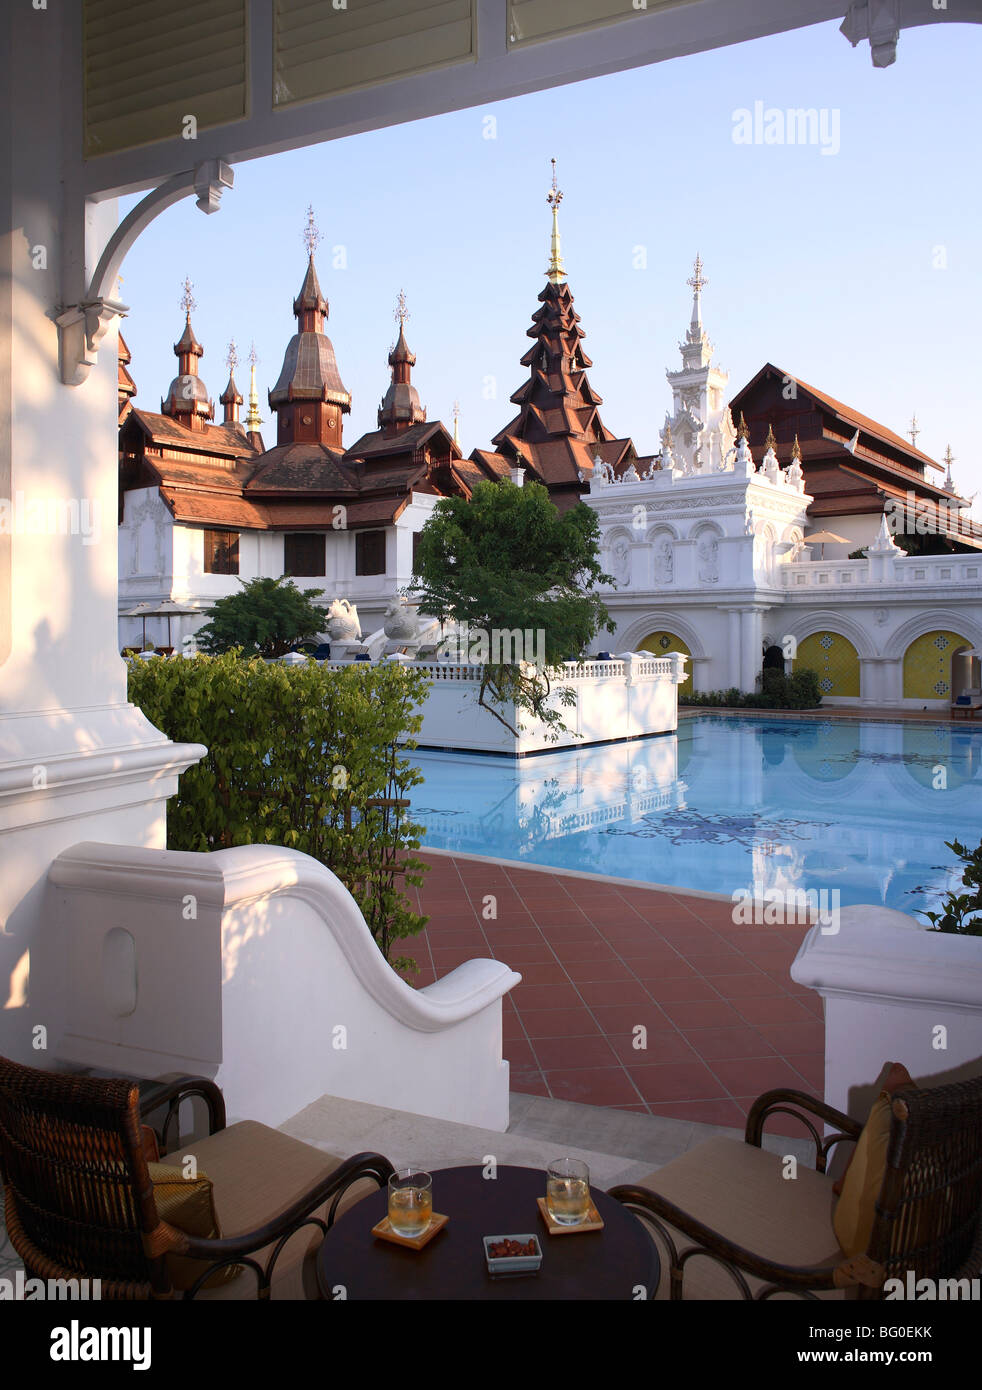 Pool at the Mandarin Oriental Dhara Dhevi Hotel in Chiang Mai, Thailand, Southeast Asia, Asia - Stock Image